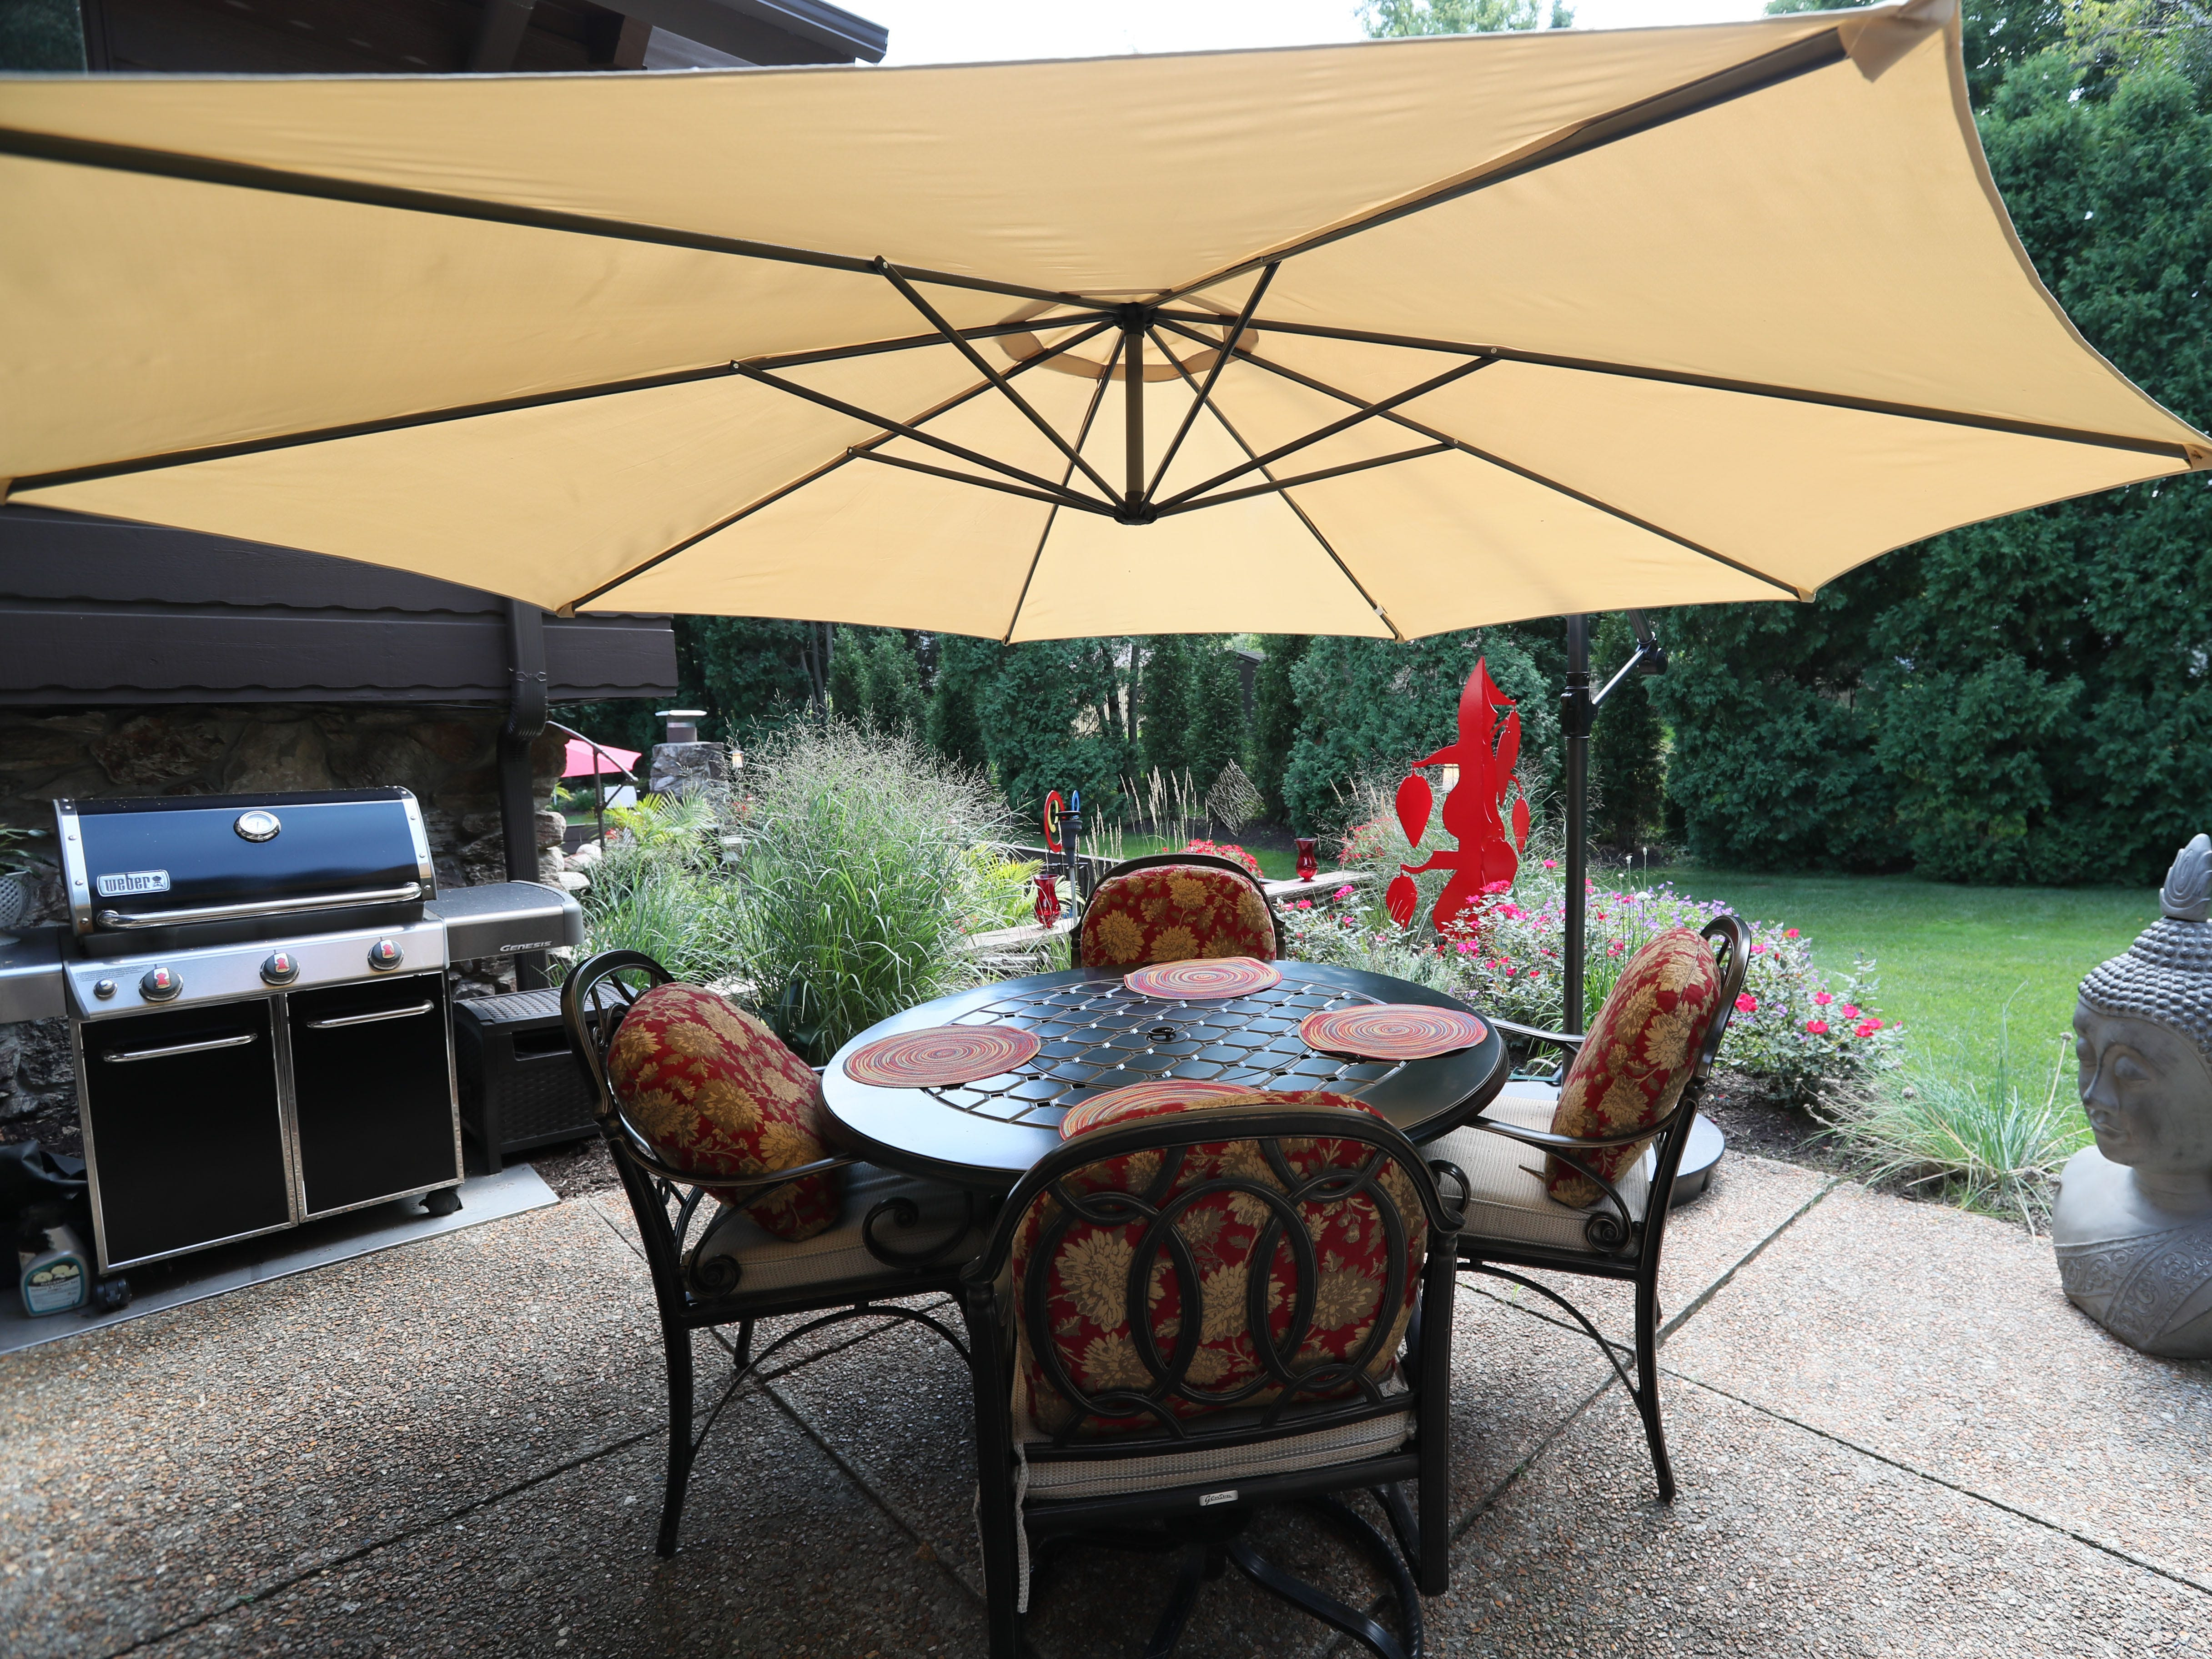 One of four patio areas on the property, this one includes an outdoor grill.